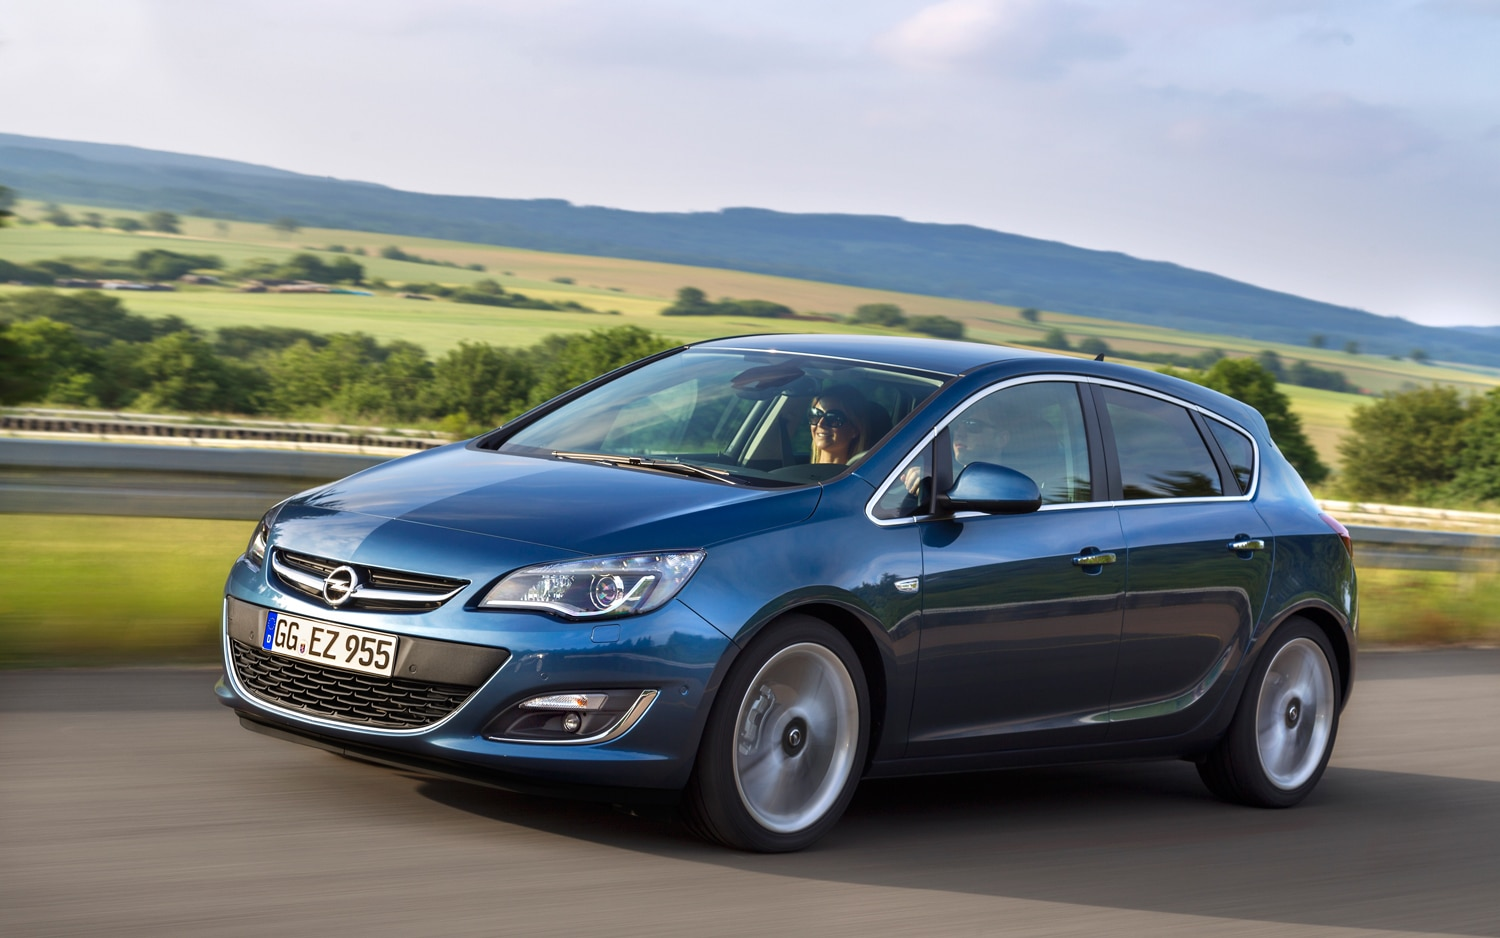 2013 Opel Astra Front Three Quarter1